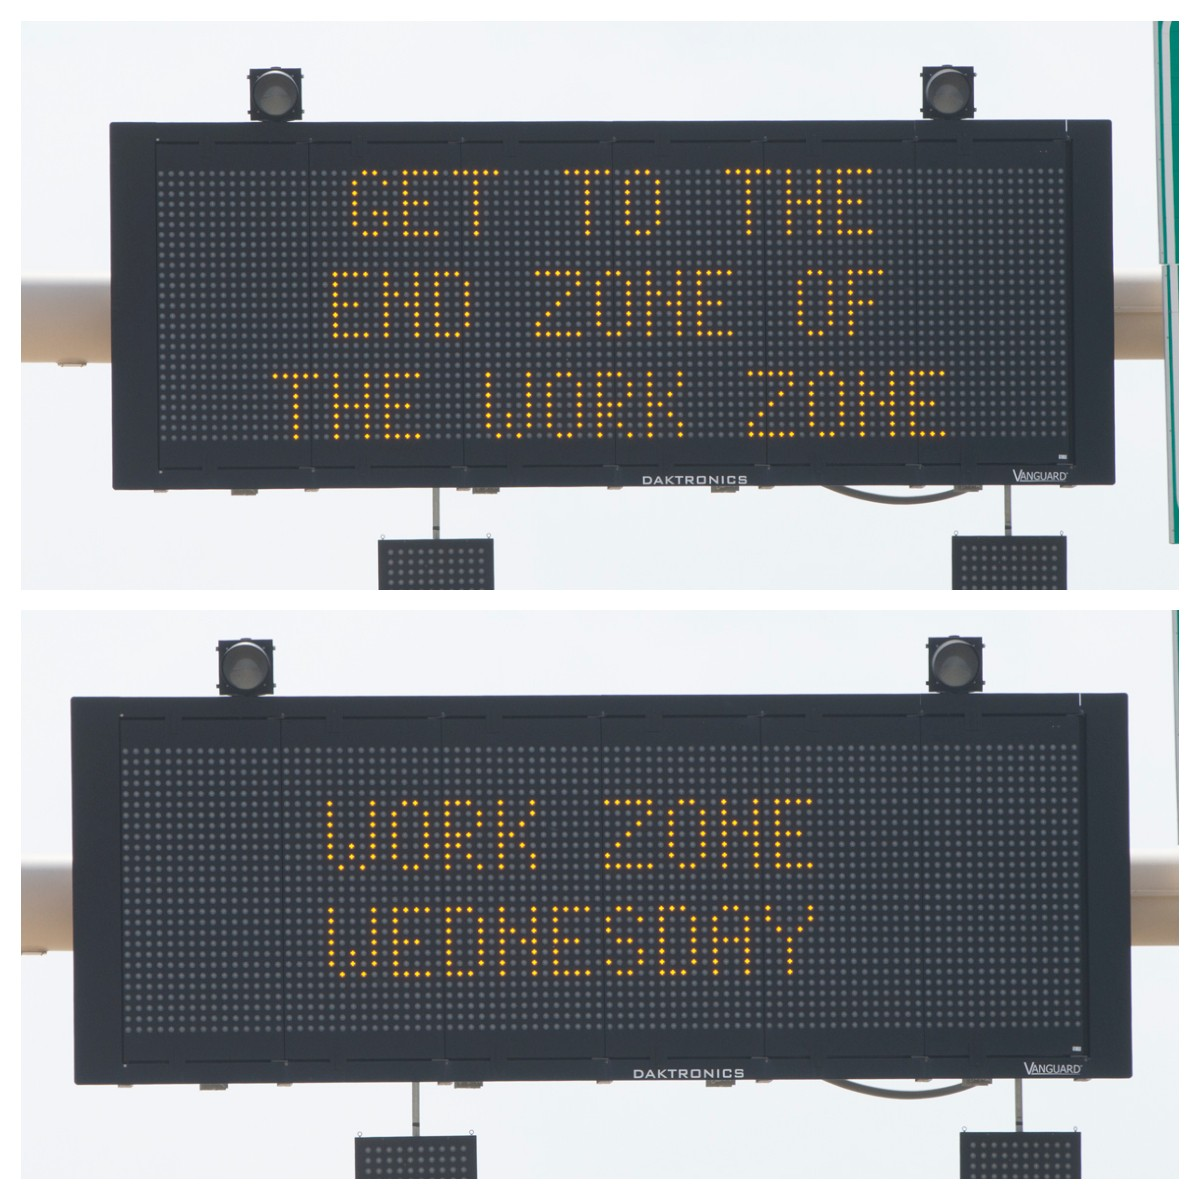 /content/dam/ok/en/odot/images/message-signs/05.25.16.jpg